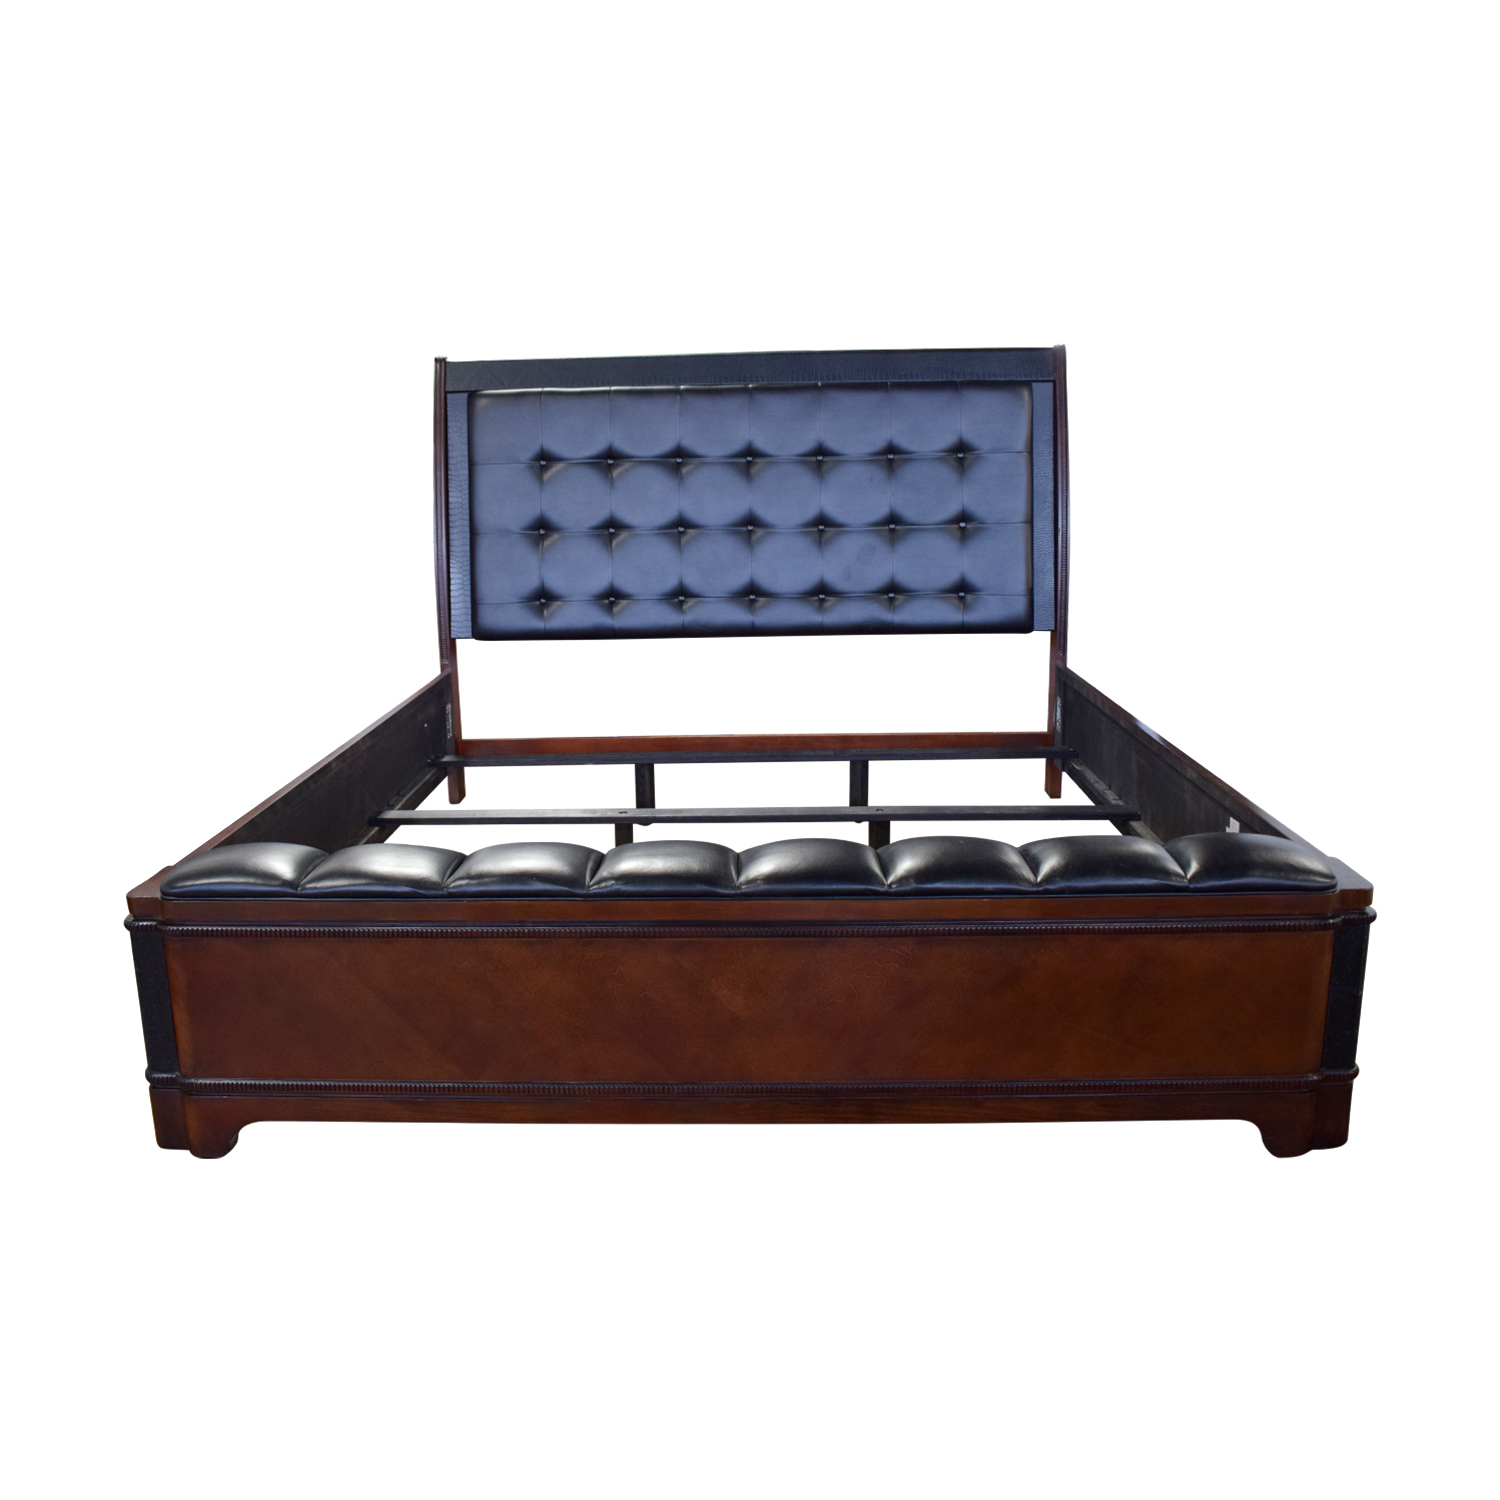 Raymour and Flanigan Raymour and Flanigan Dundee Black Leather and Wood King Bed Frame Beds